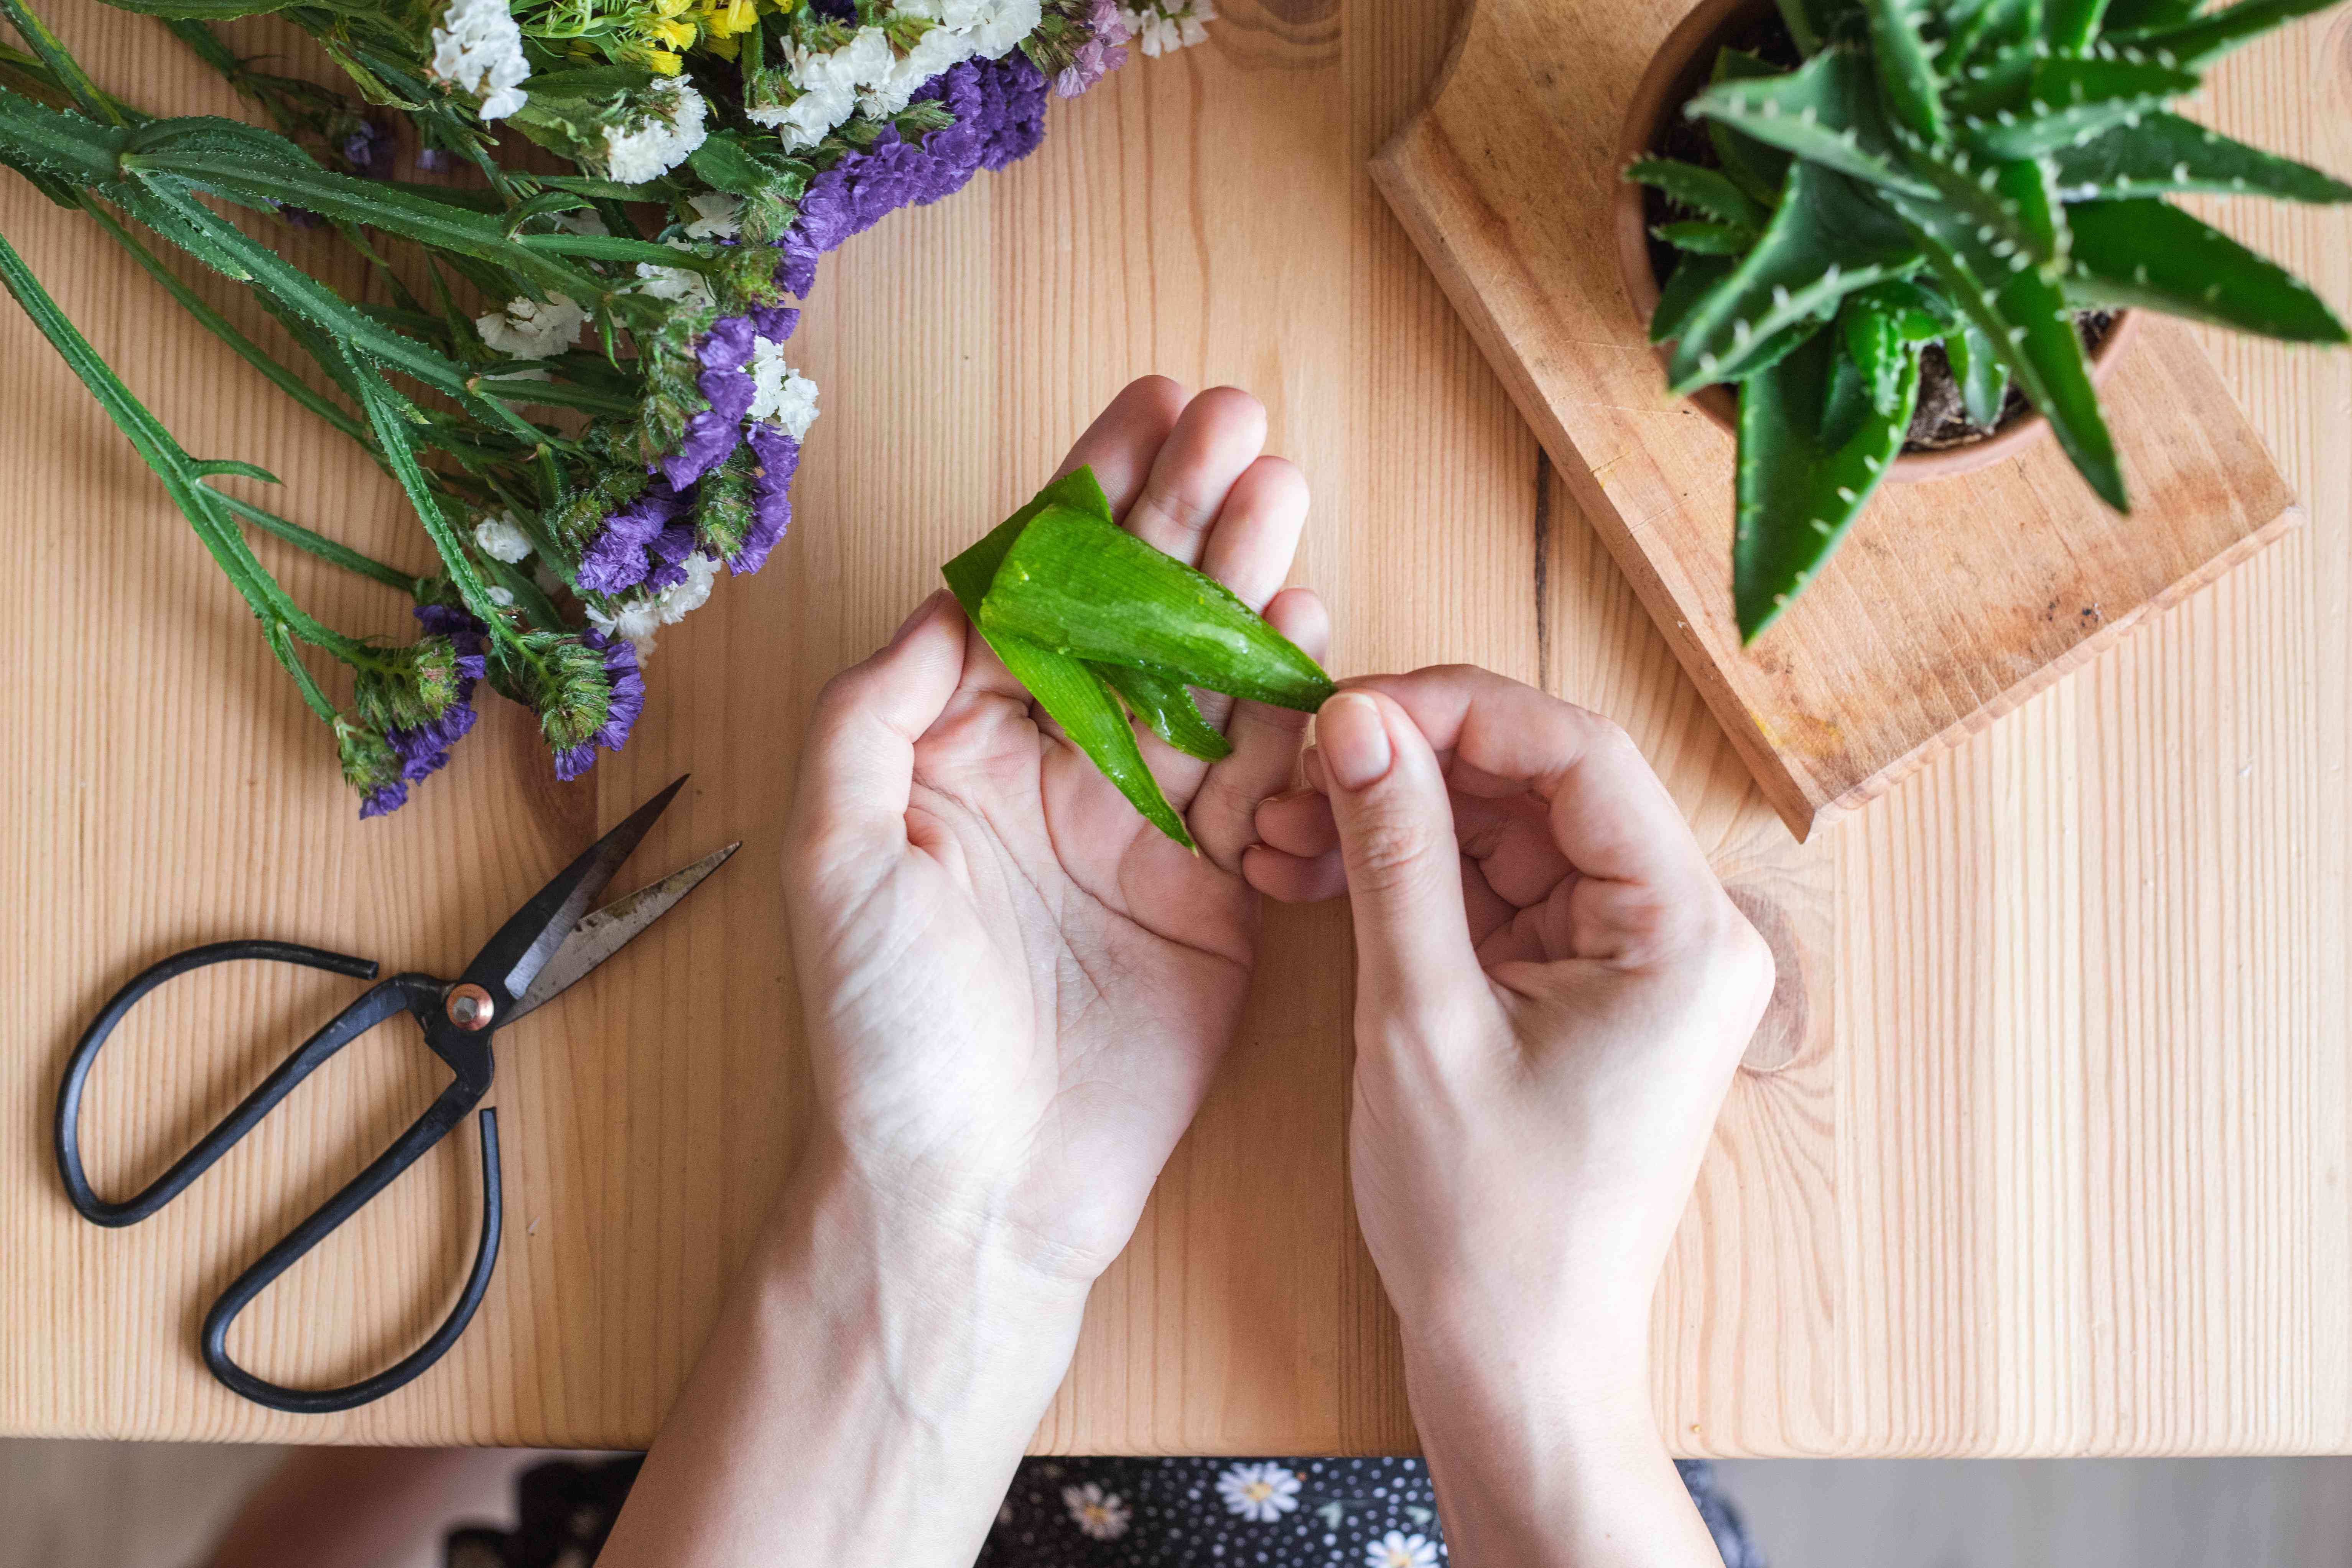 hands hold cut aloe leaf with scissors and flowers nearby on wooden table